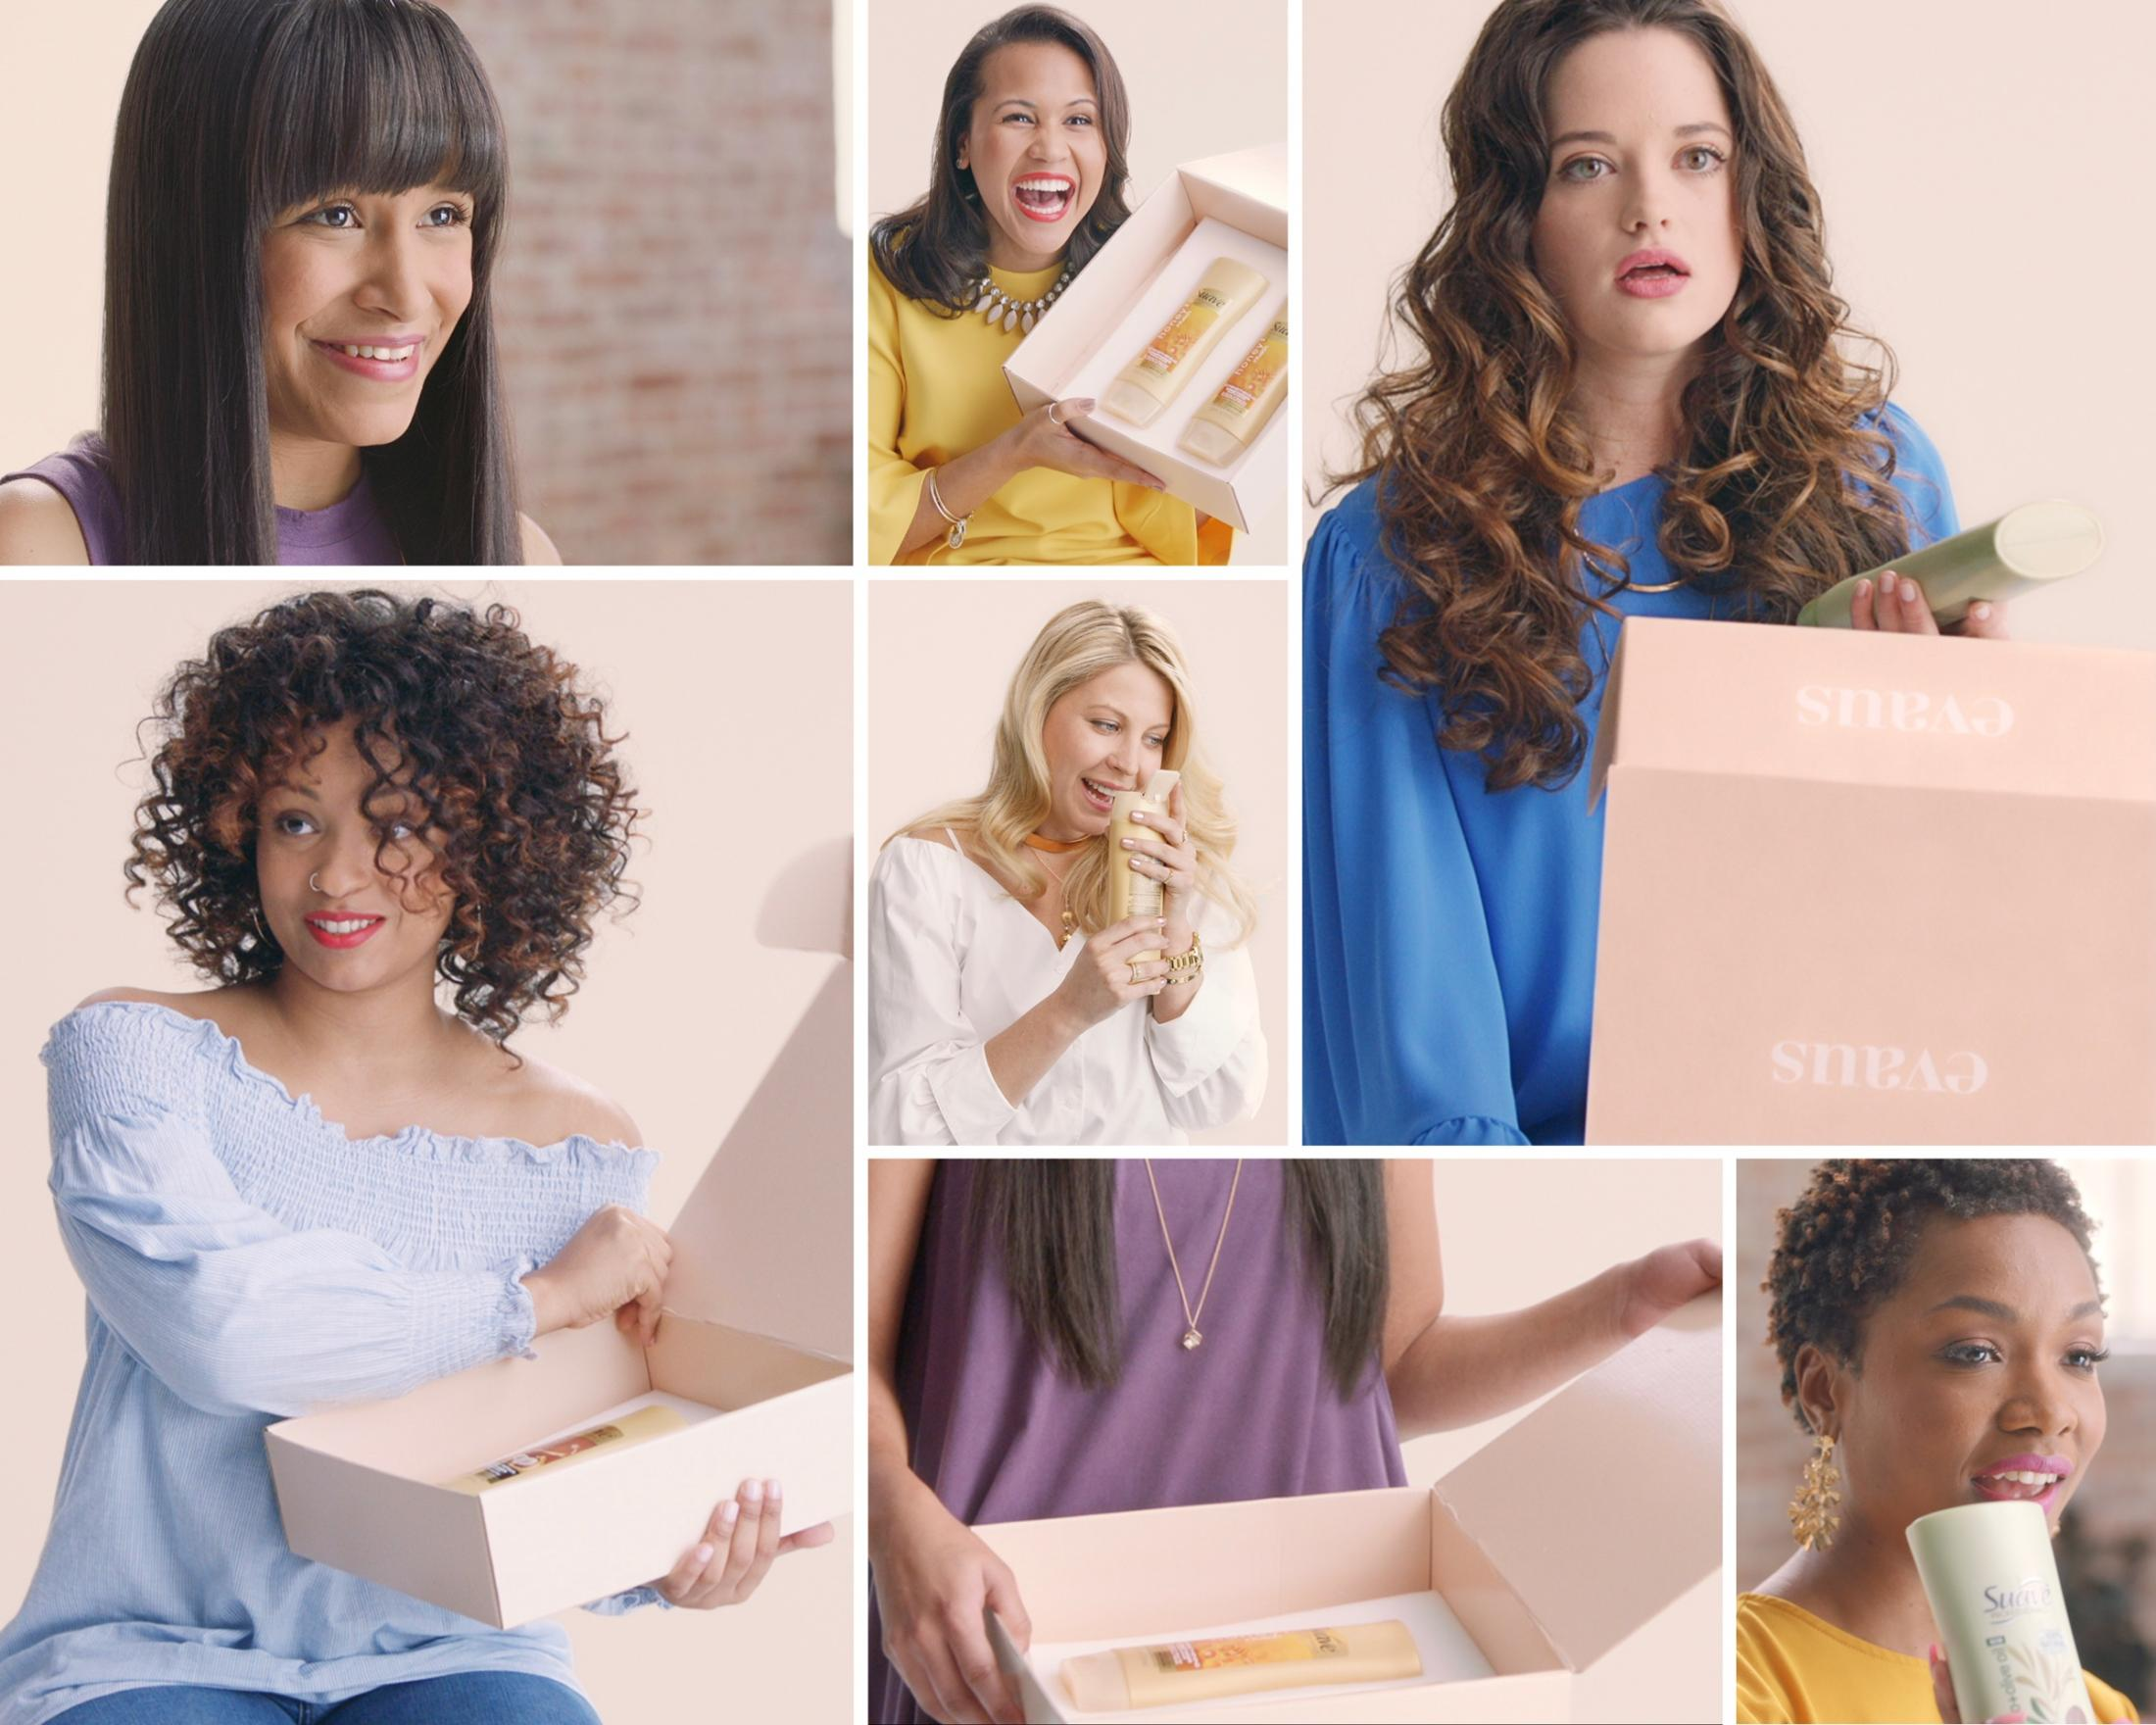 Suave: The Evaus Project: Trolling The Beauty Industry To Change Brand Perception